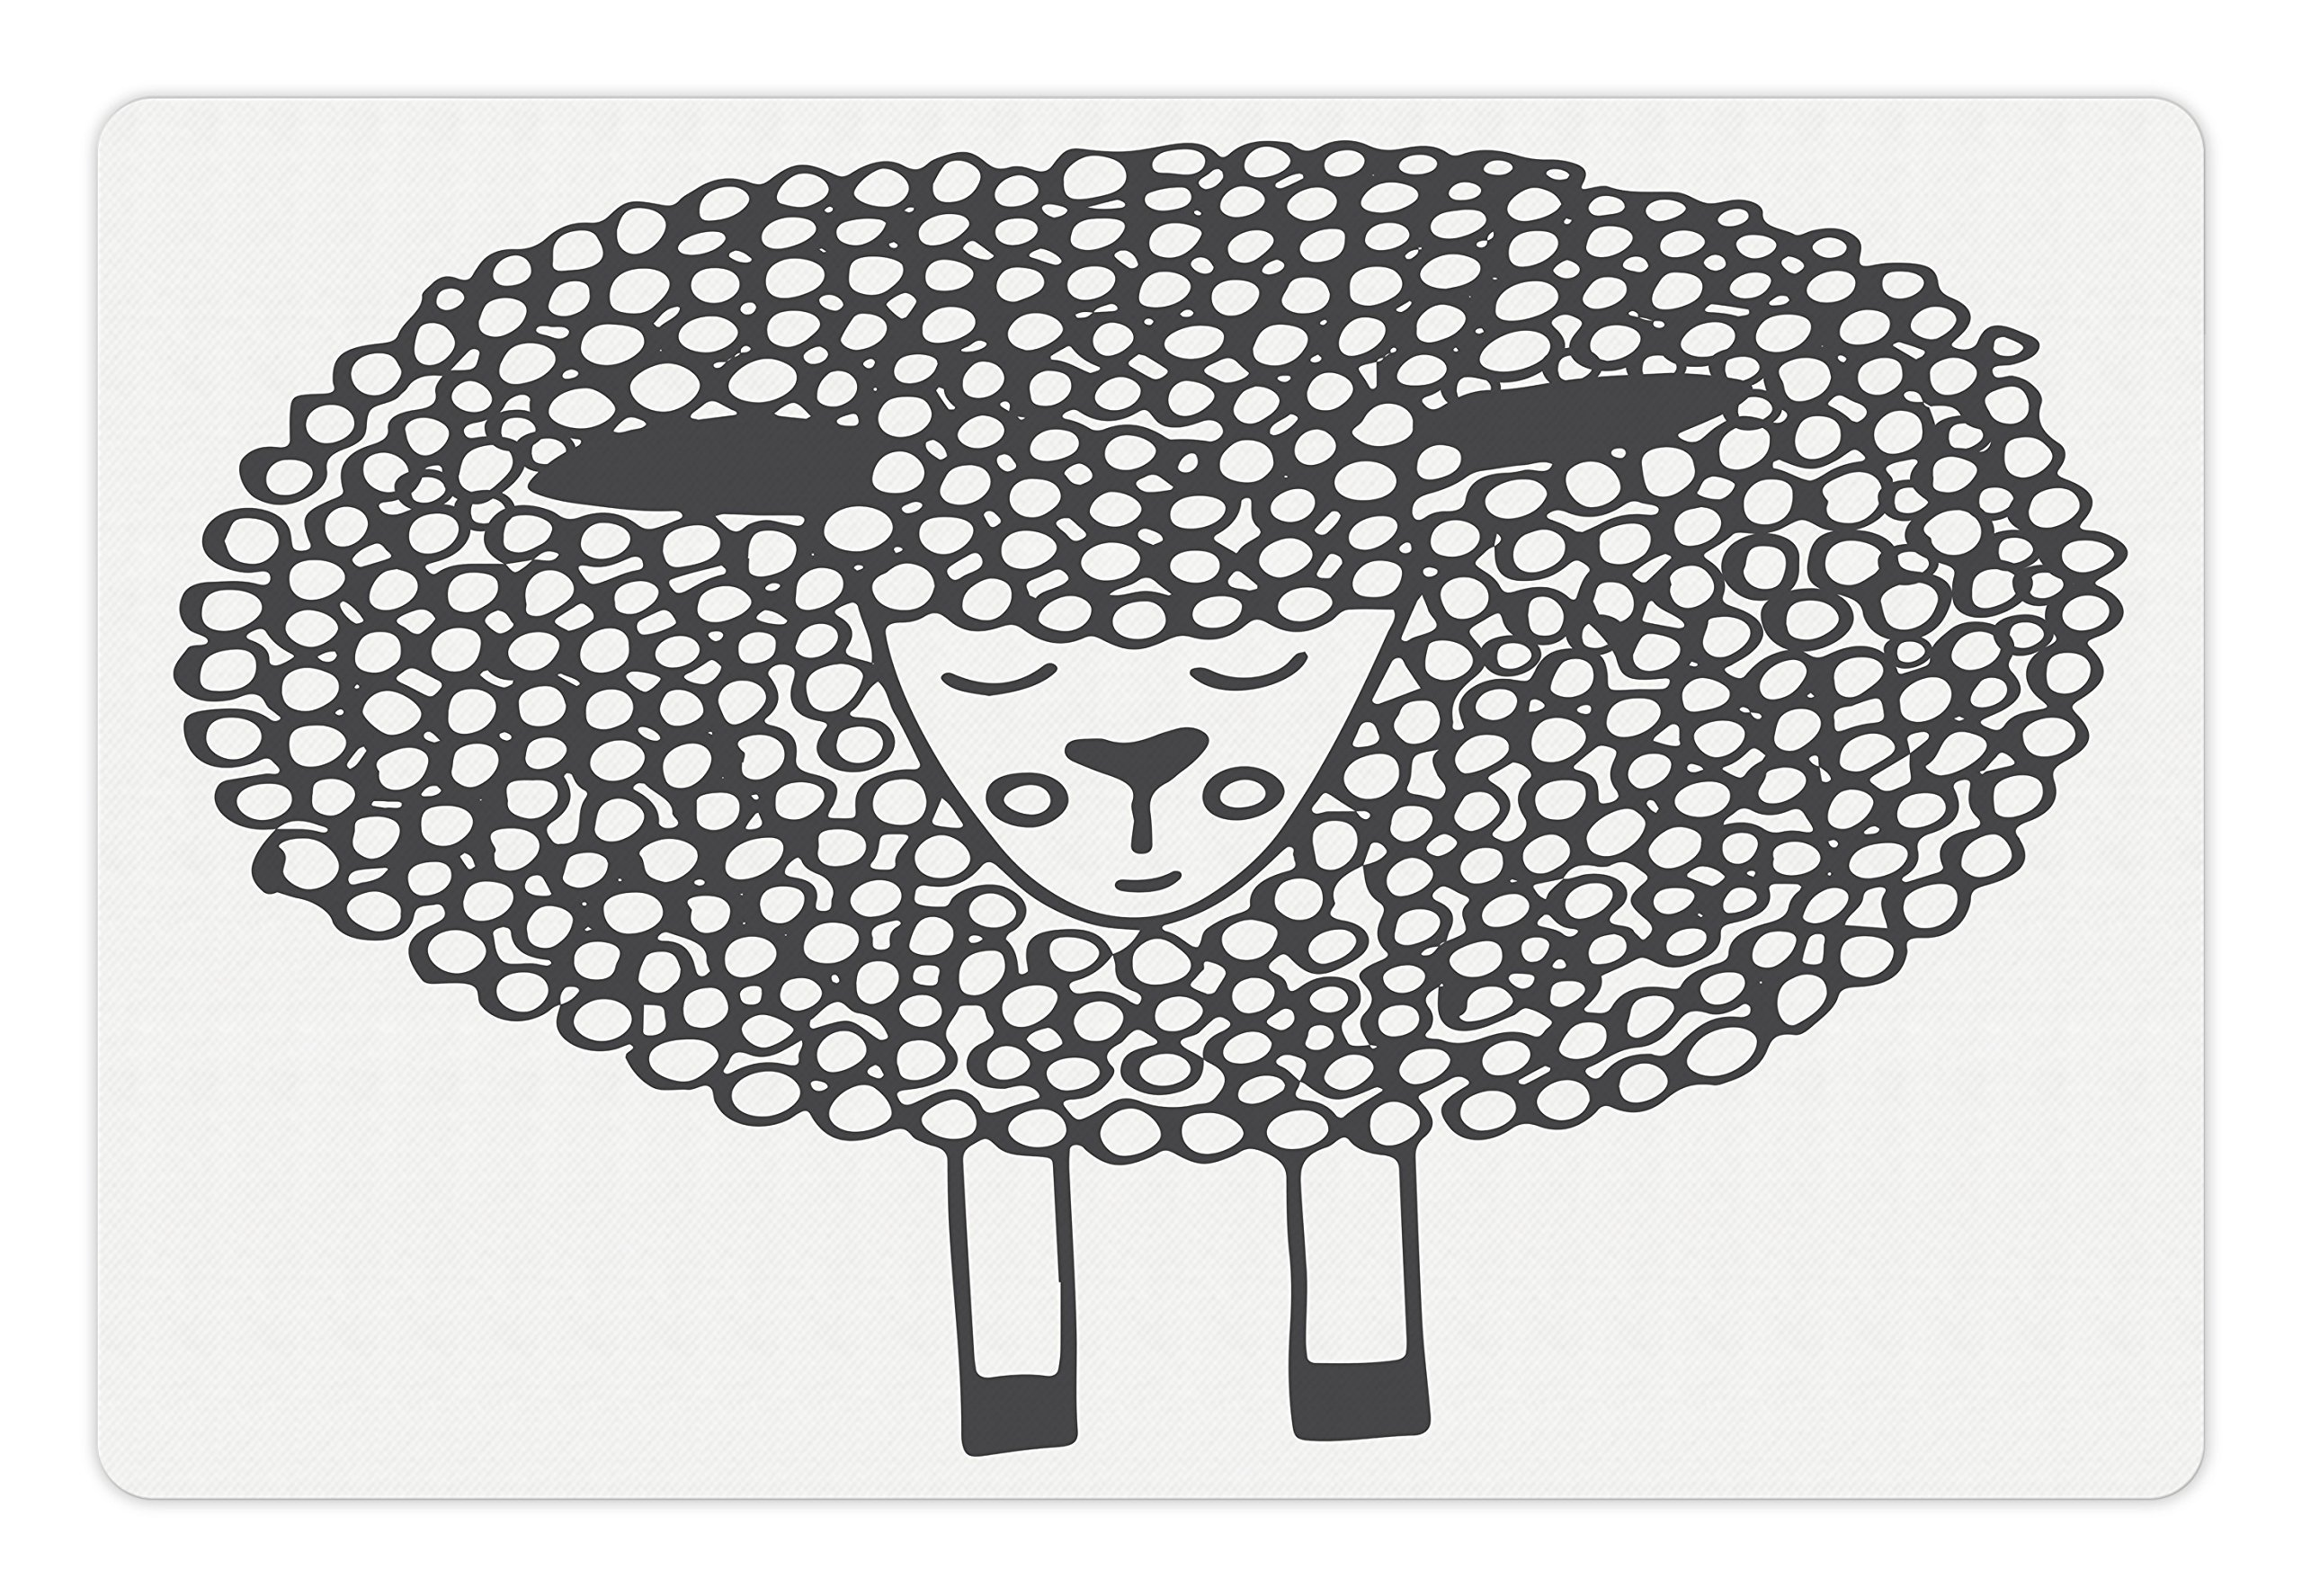 Ambesonne Grey and White Pet Mat for Food and Water, Monochrome Sheep with Doodle Design Farm Animal Illustration, Rectangle Non-Slip Rubber Mat for Dogs and Cats, Charcoal Grey and White